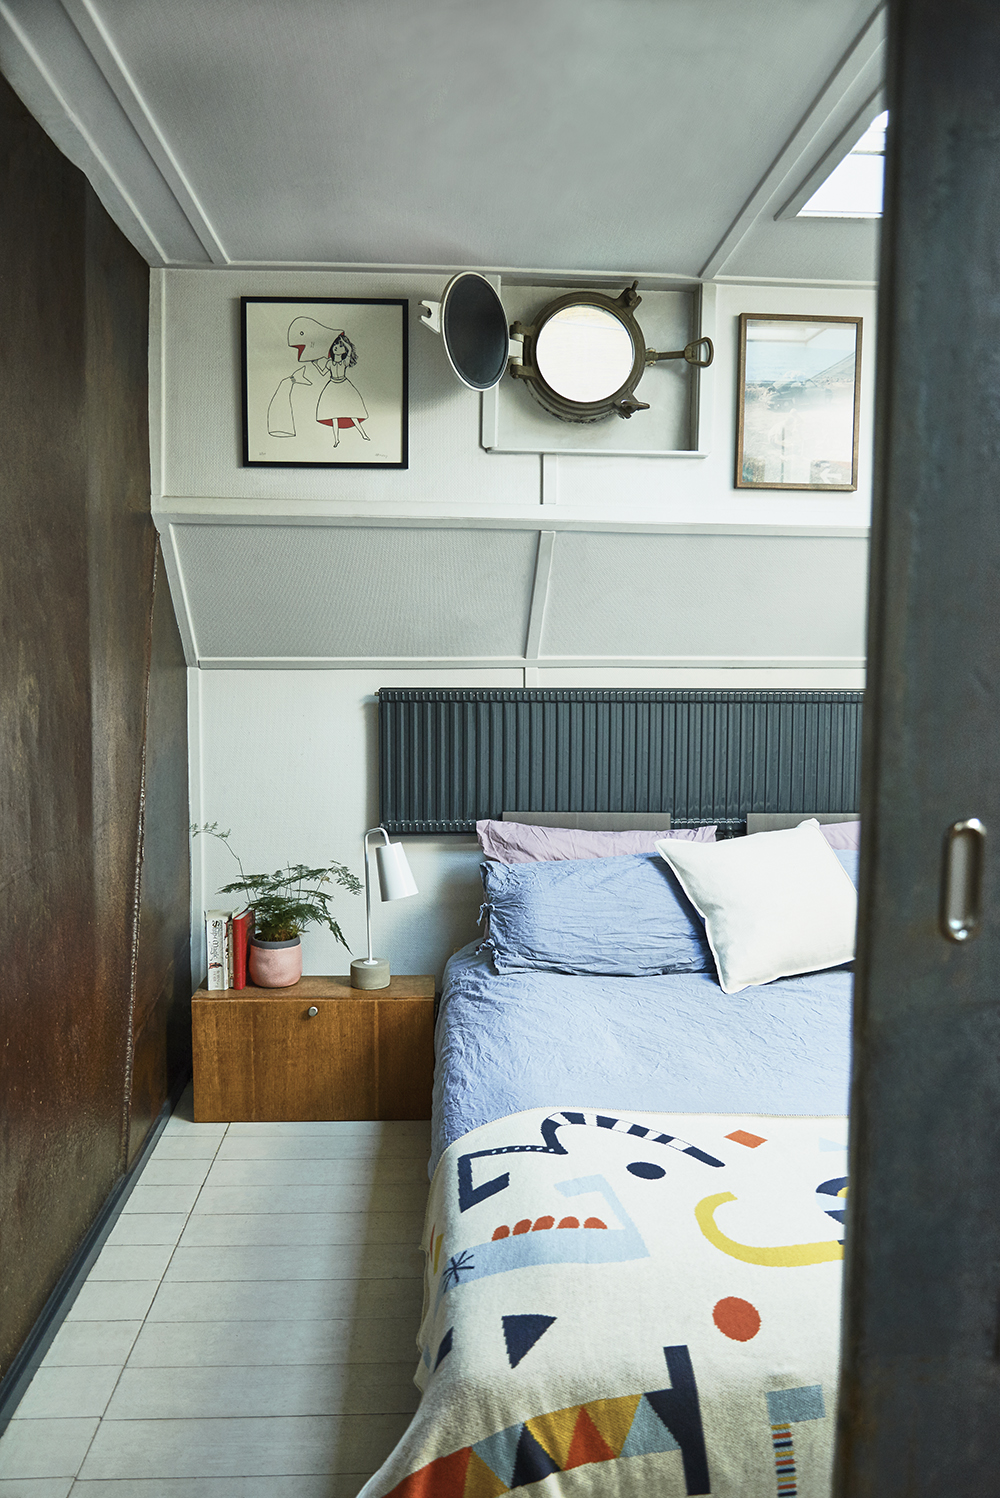 London house boat tour - bedroom